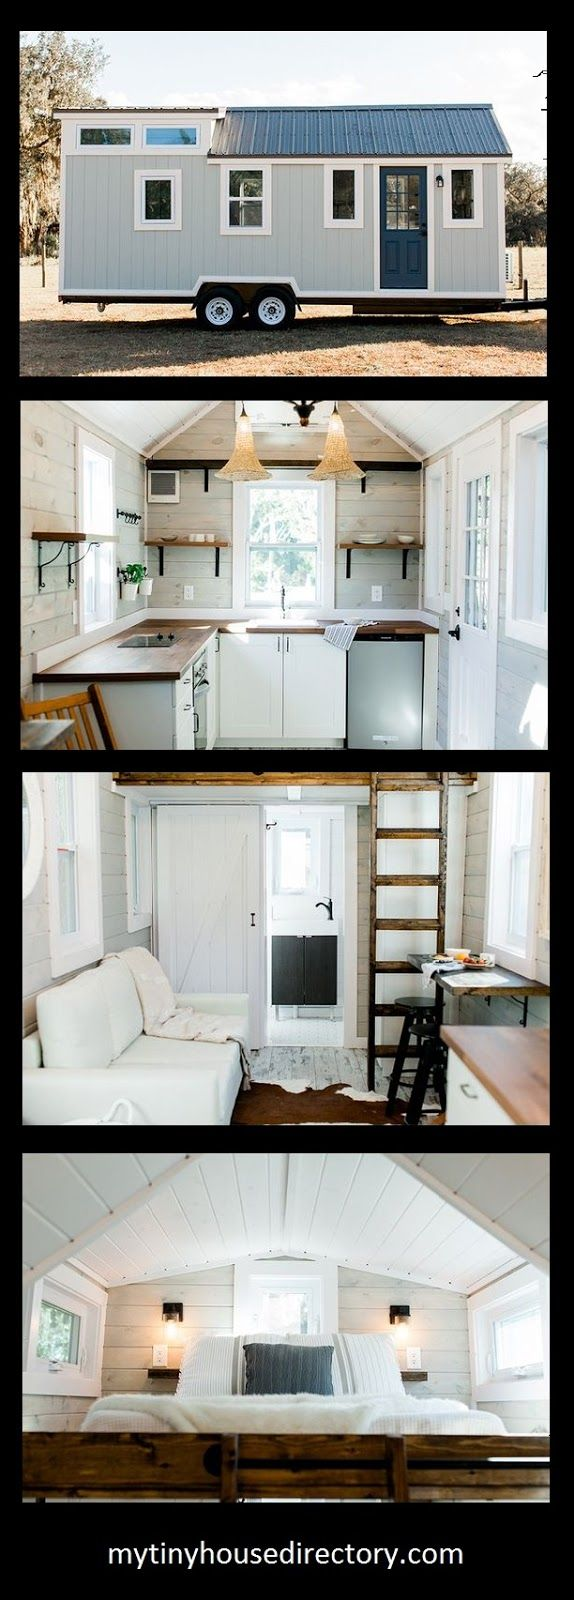 3694 best Tiny House Luv images on Pinterest | Small houses, Tiny ...